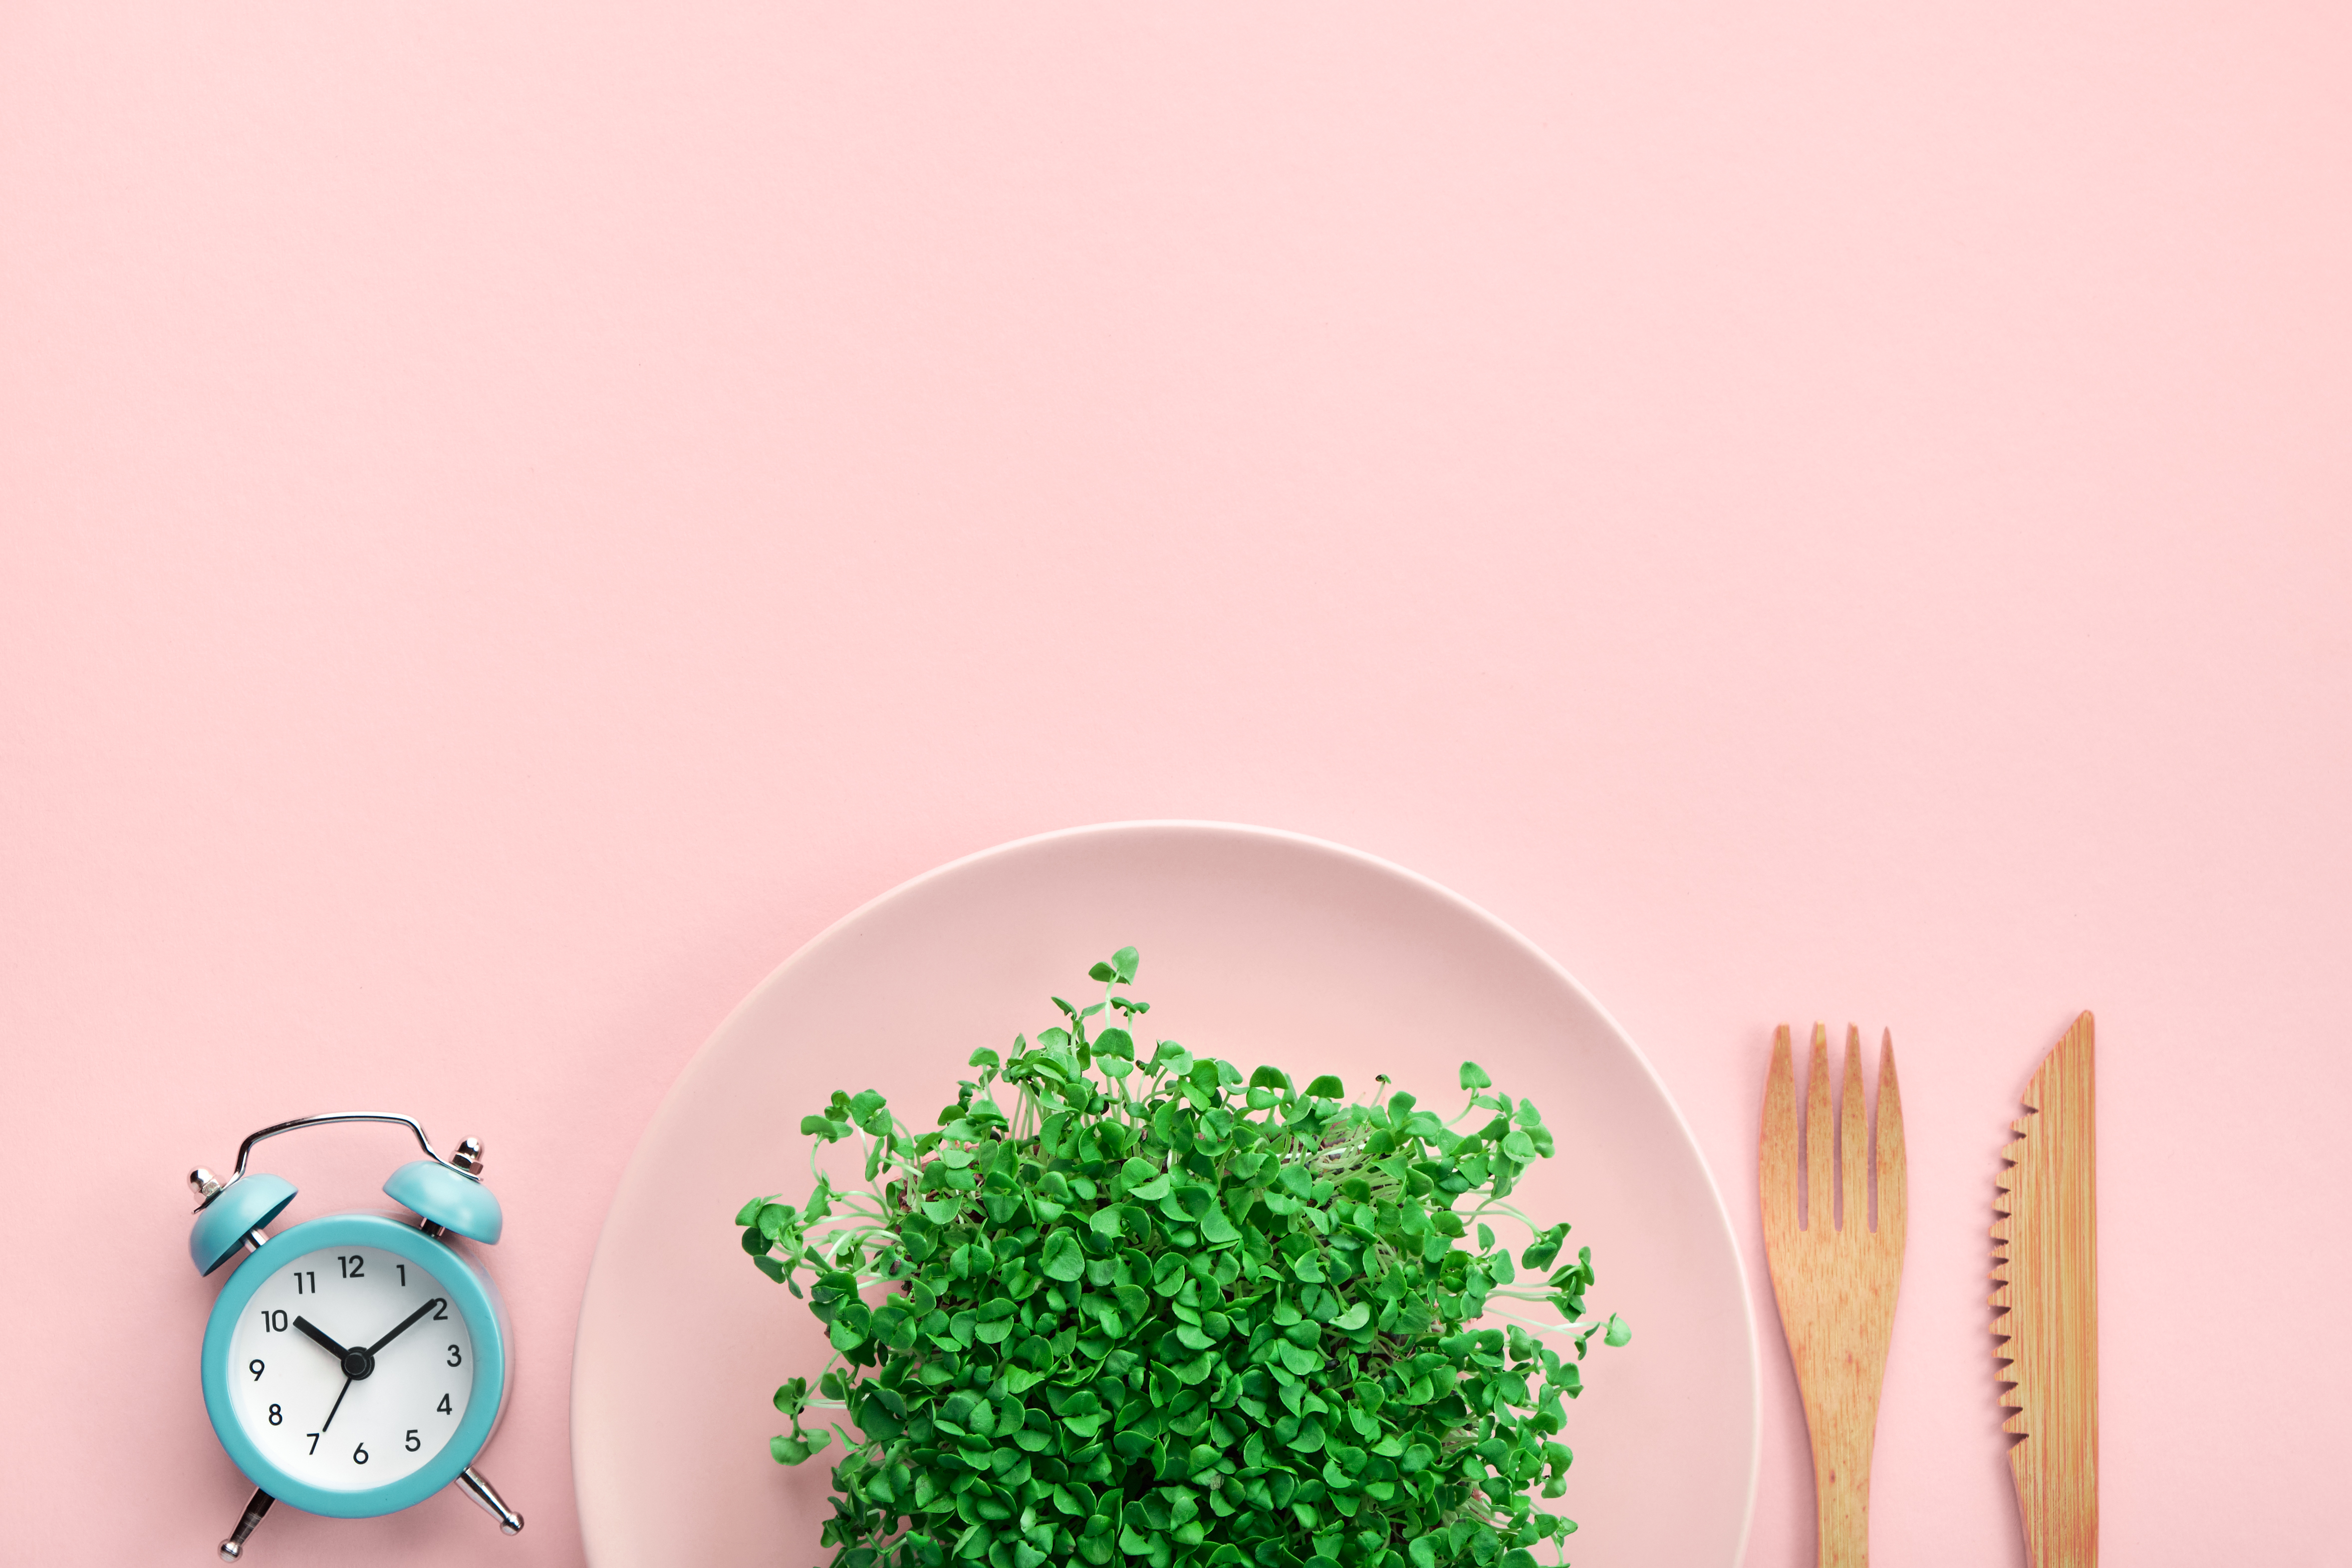 Intermittent fasting: What nutritionists and dietitians think about it